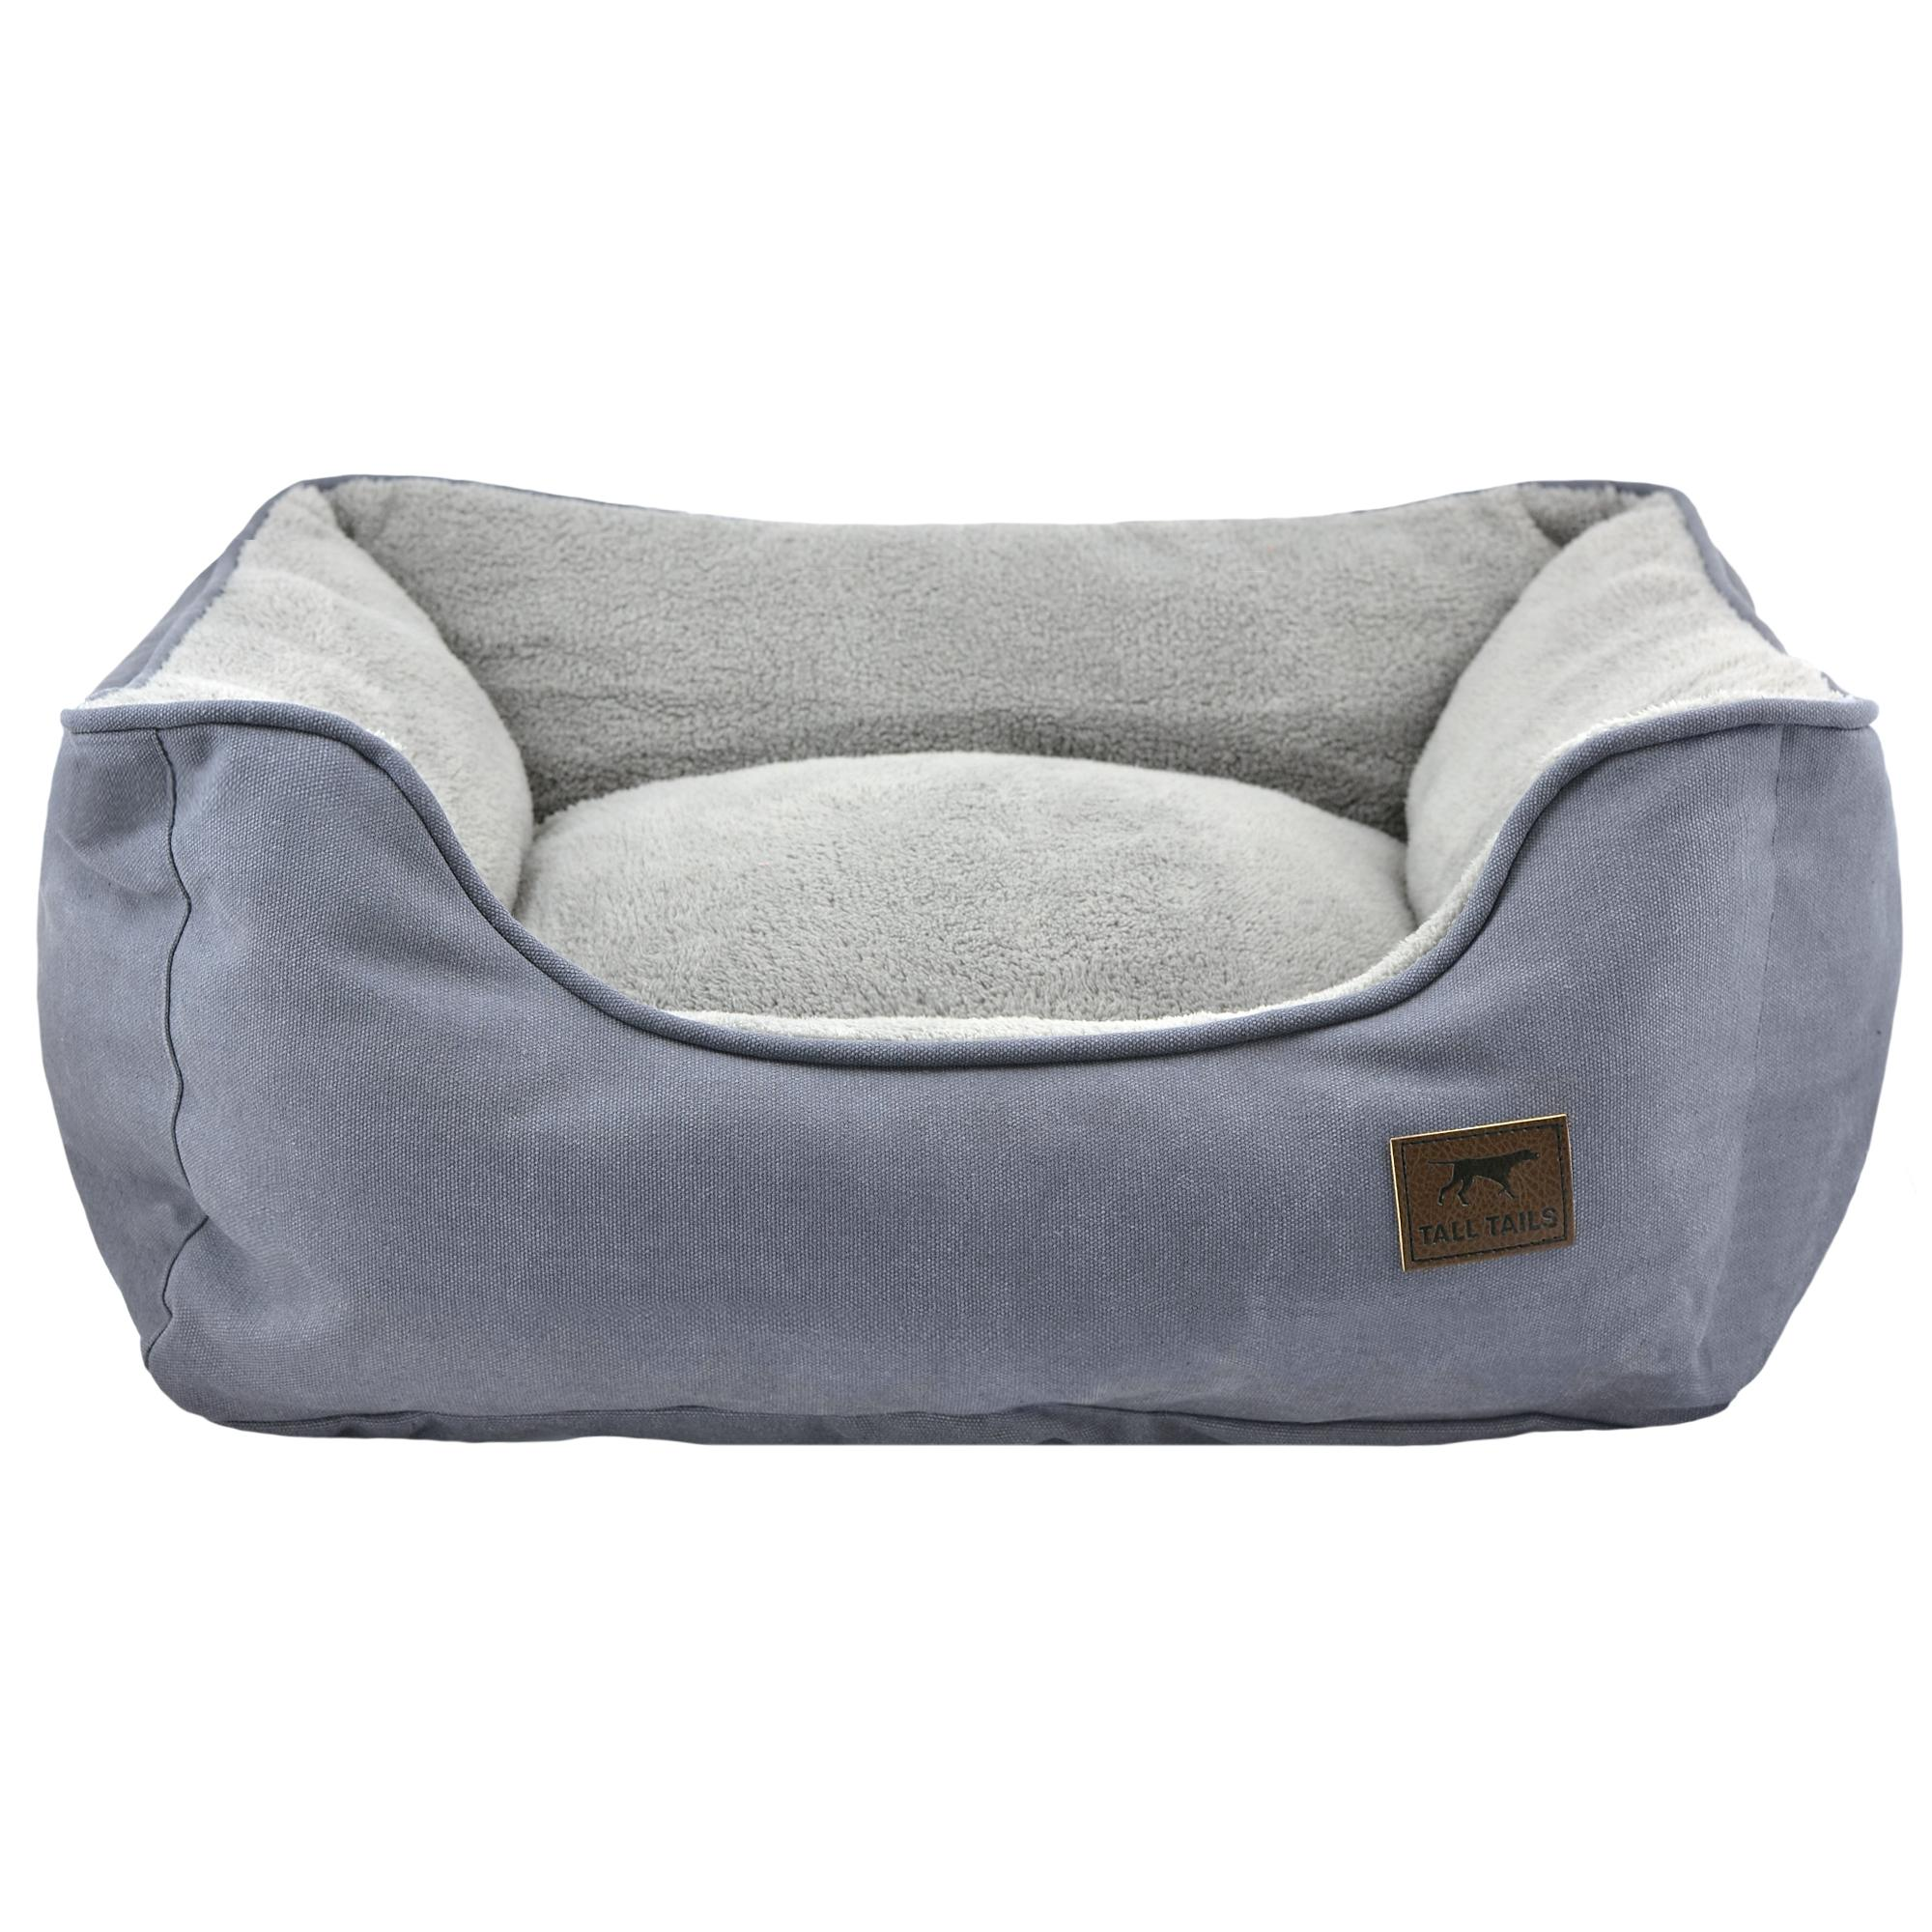 Tall Tails Dream Chaser Bolster Dog Bed, Charcoal, Large